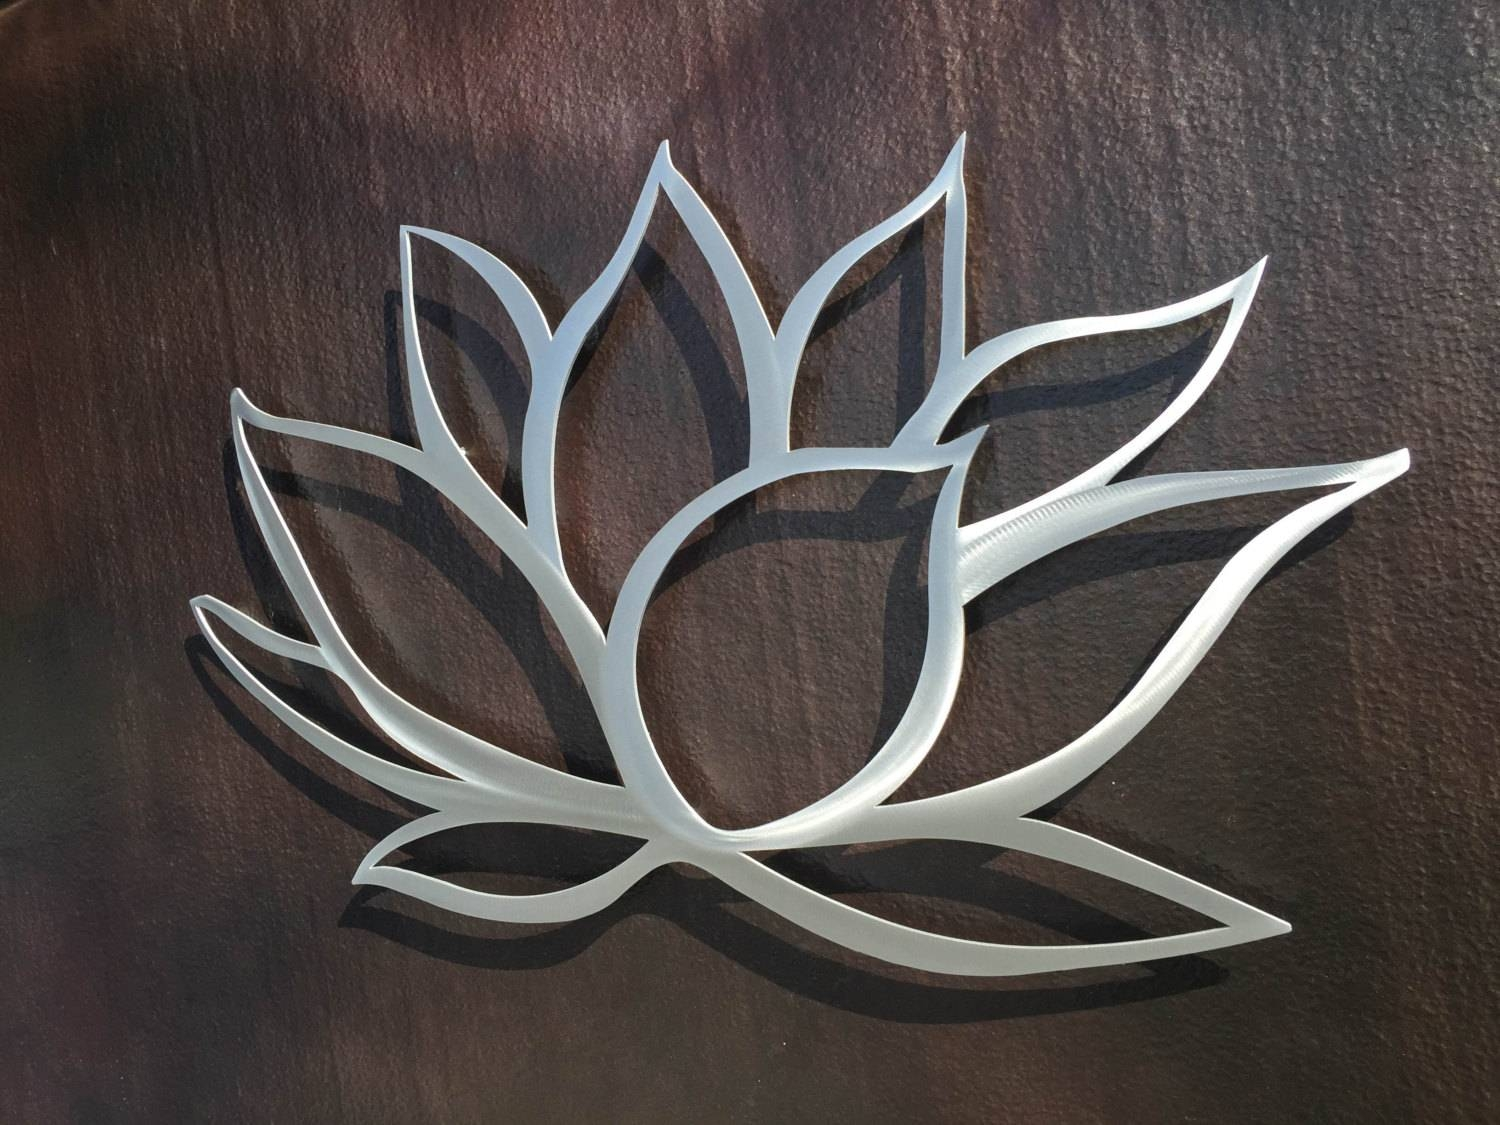 41 Silver Metal Wall Art Flowers, Home Metal Wall Art Wall Decor For Most Up To Date Contemporary Metal Wall Art Flowers (View 5 of 20)